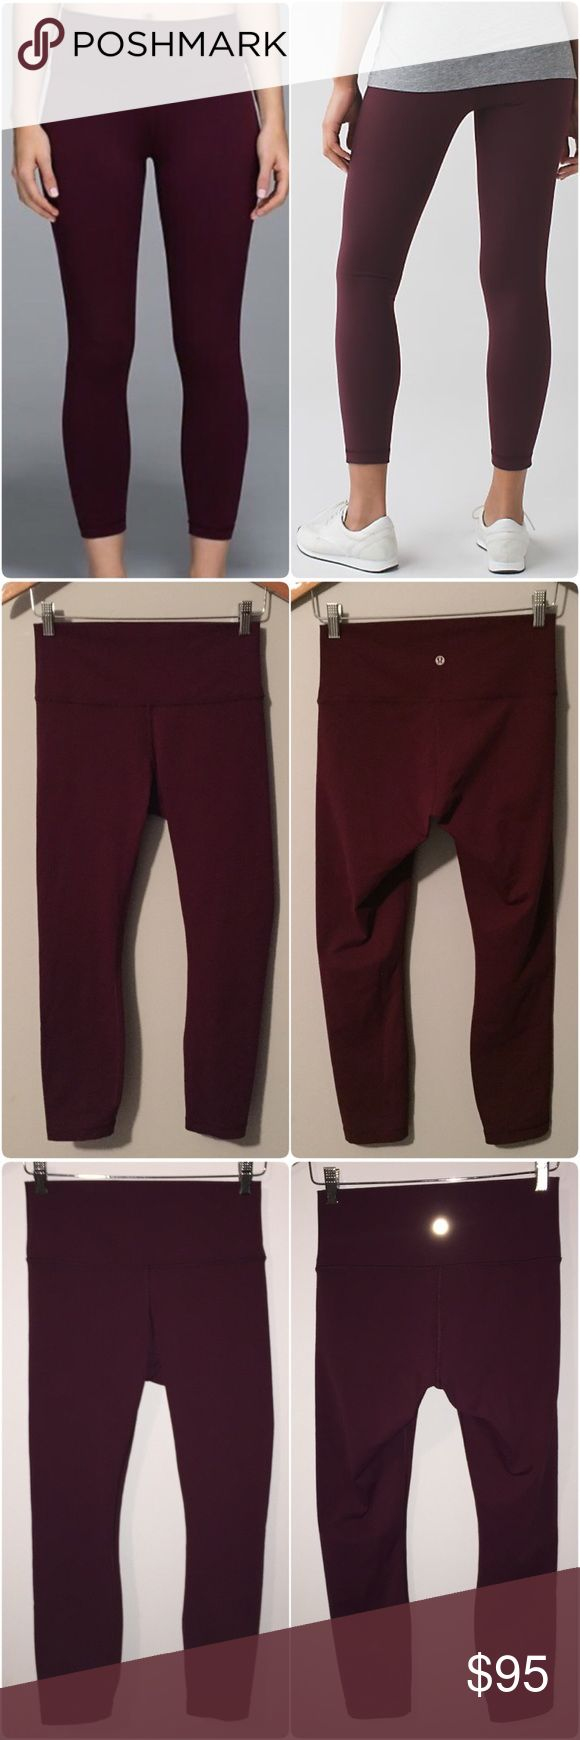 Lululemon High Times Pant Lululemon High Times Pant in Bordeaux Drama color, size 8, gently worn & in great condition with no flaws(meaning no rips/holes/piling/seam damages/snags/etc). Super soft Full on Luon fabric provides great coverage, is moisture wicking, and four way stretch. Added Lycra fibre bends with you & makes them stay in great shape, hidden pocket in waistband, 7/8 length, tight fit, high rise. 3rd pic & bottom 2 pics in 4th pic are with the camera flash on. True to color in…